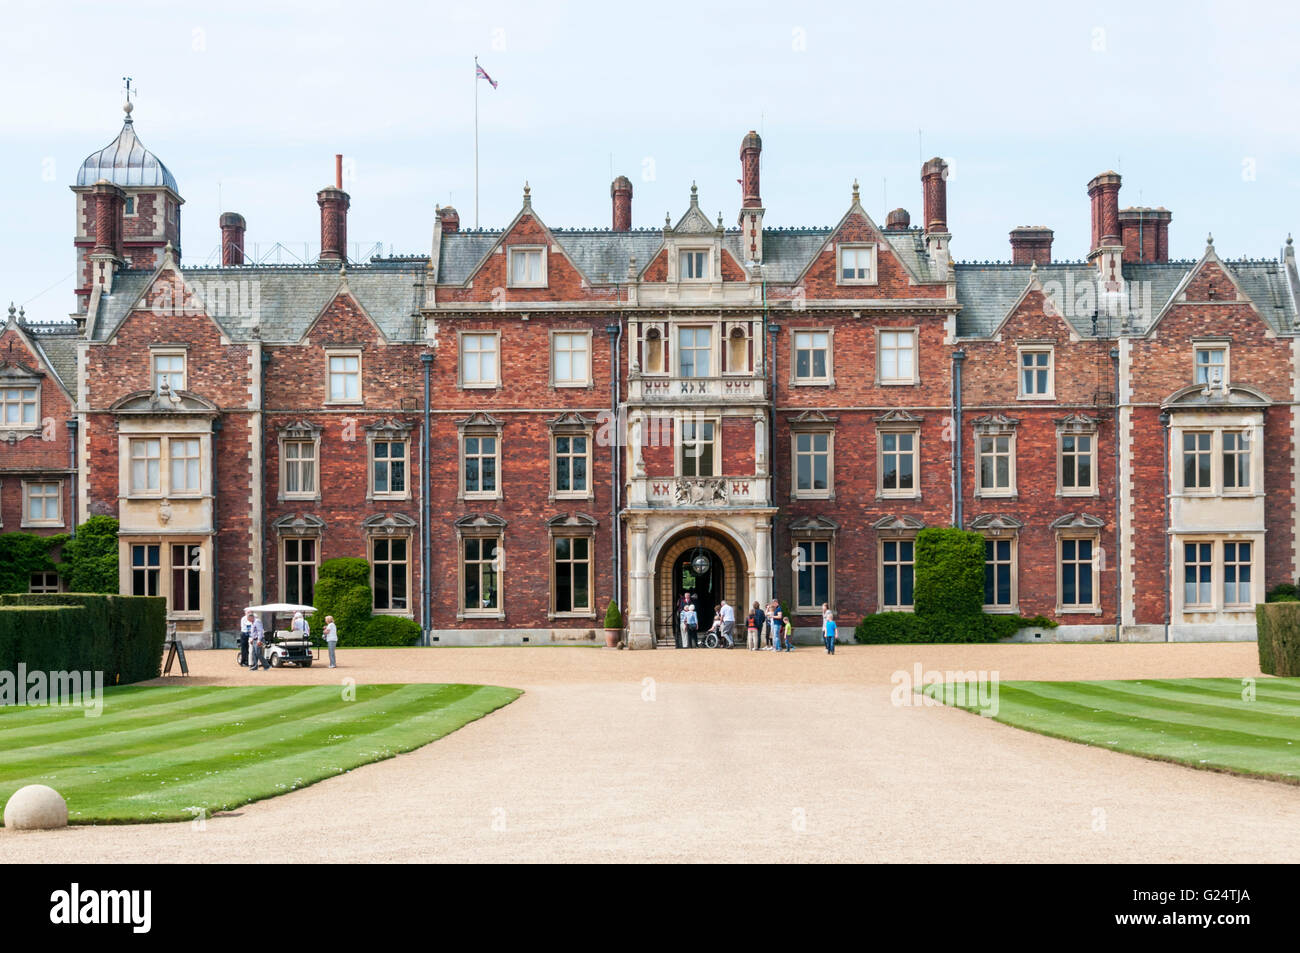 The north front entrance to Sandringham House with a tour party arriving and a shuttle from the car park. - Stock Image